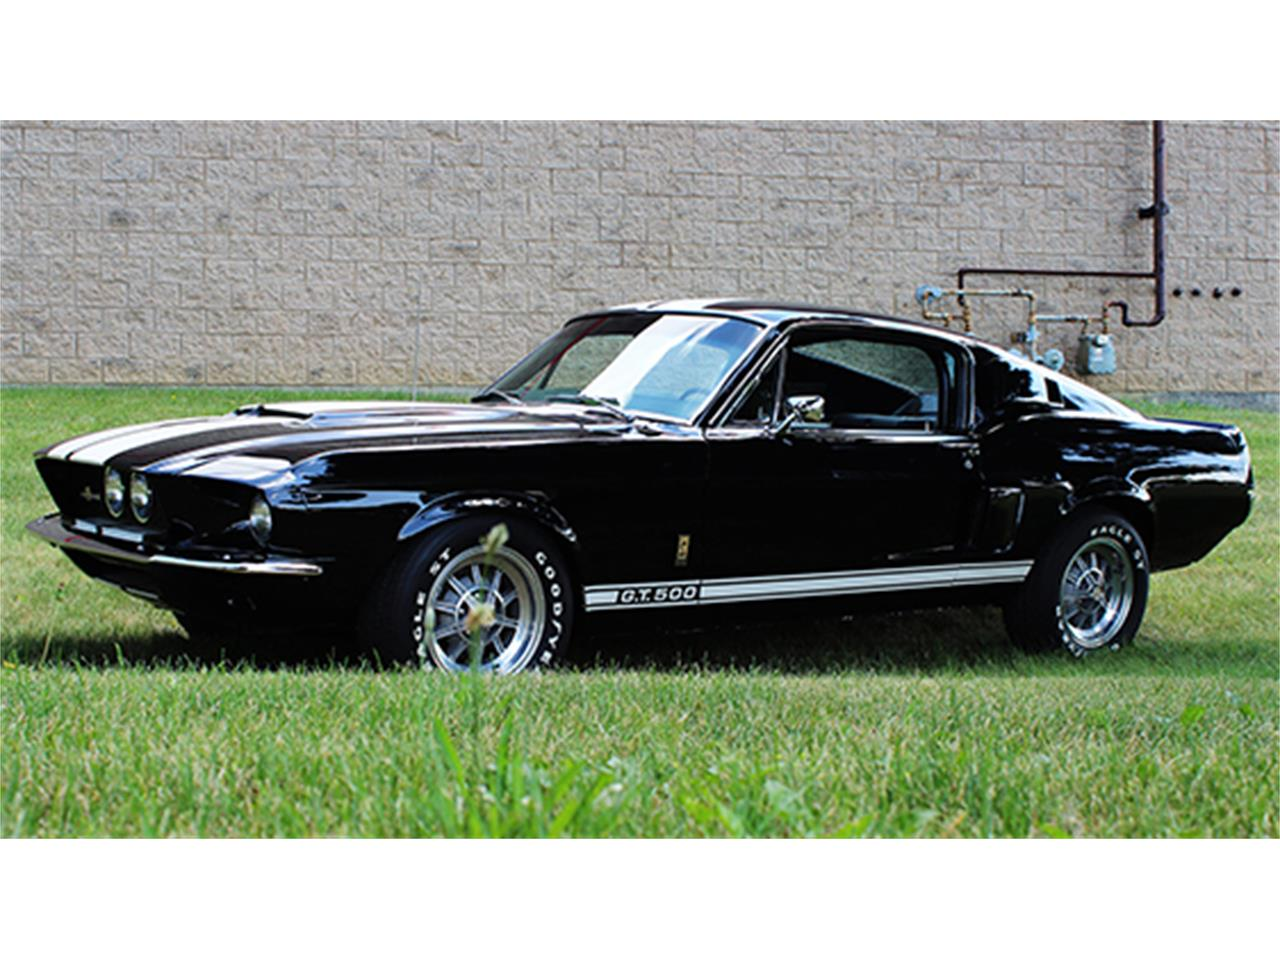 1967 Ford Mustang Fastback S-Code Shelby Tribute for Sale | ClassicCars.com | CC-886873